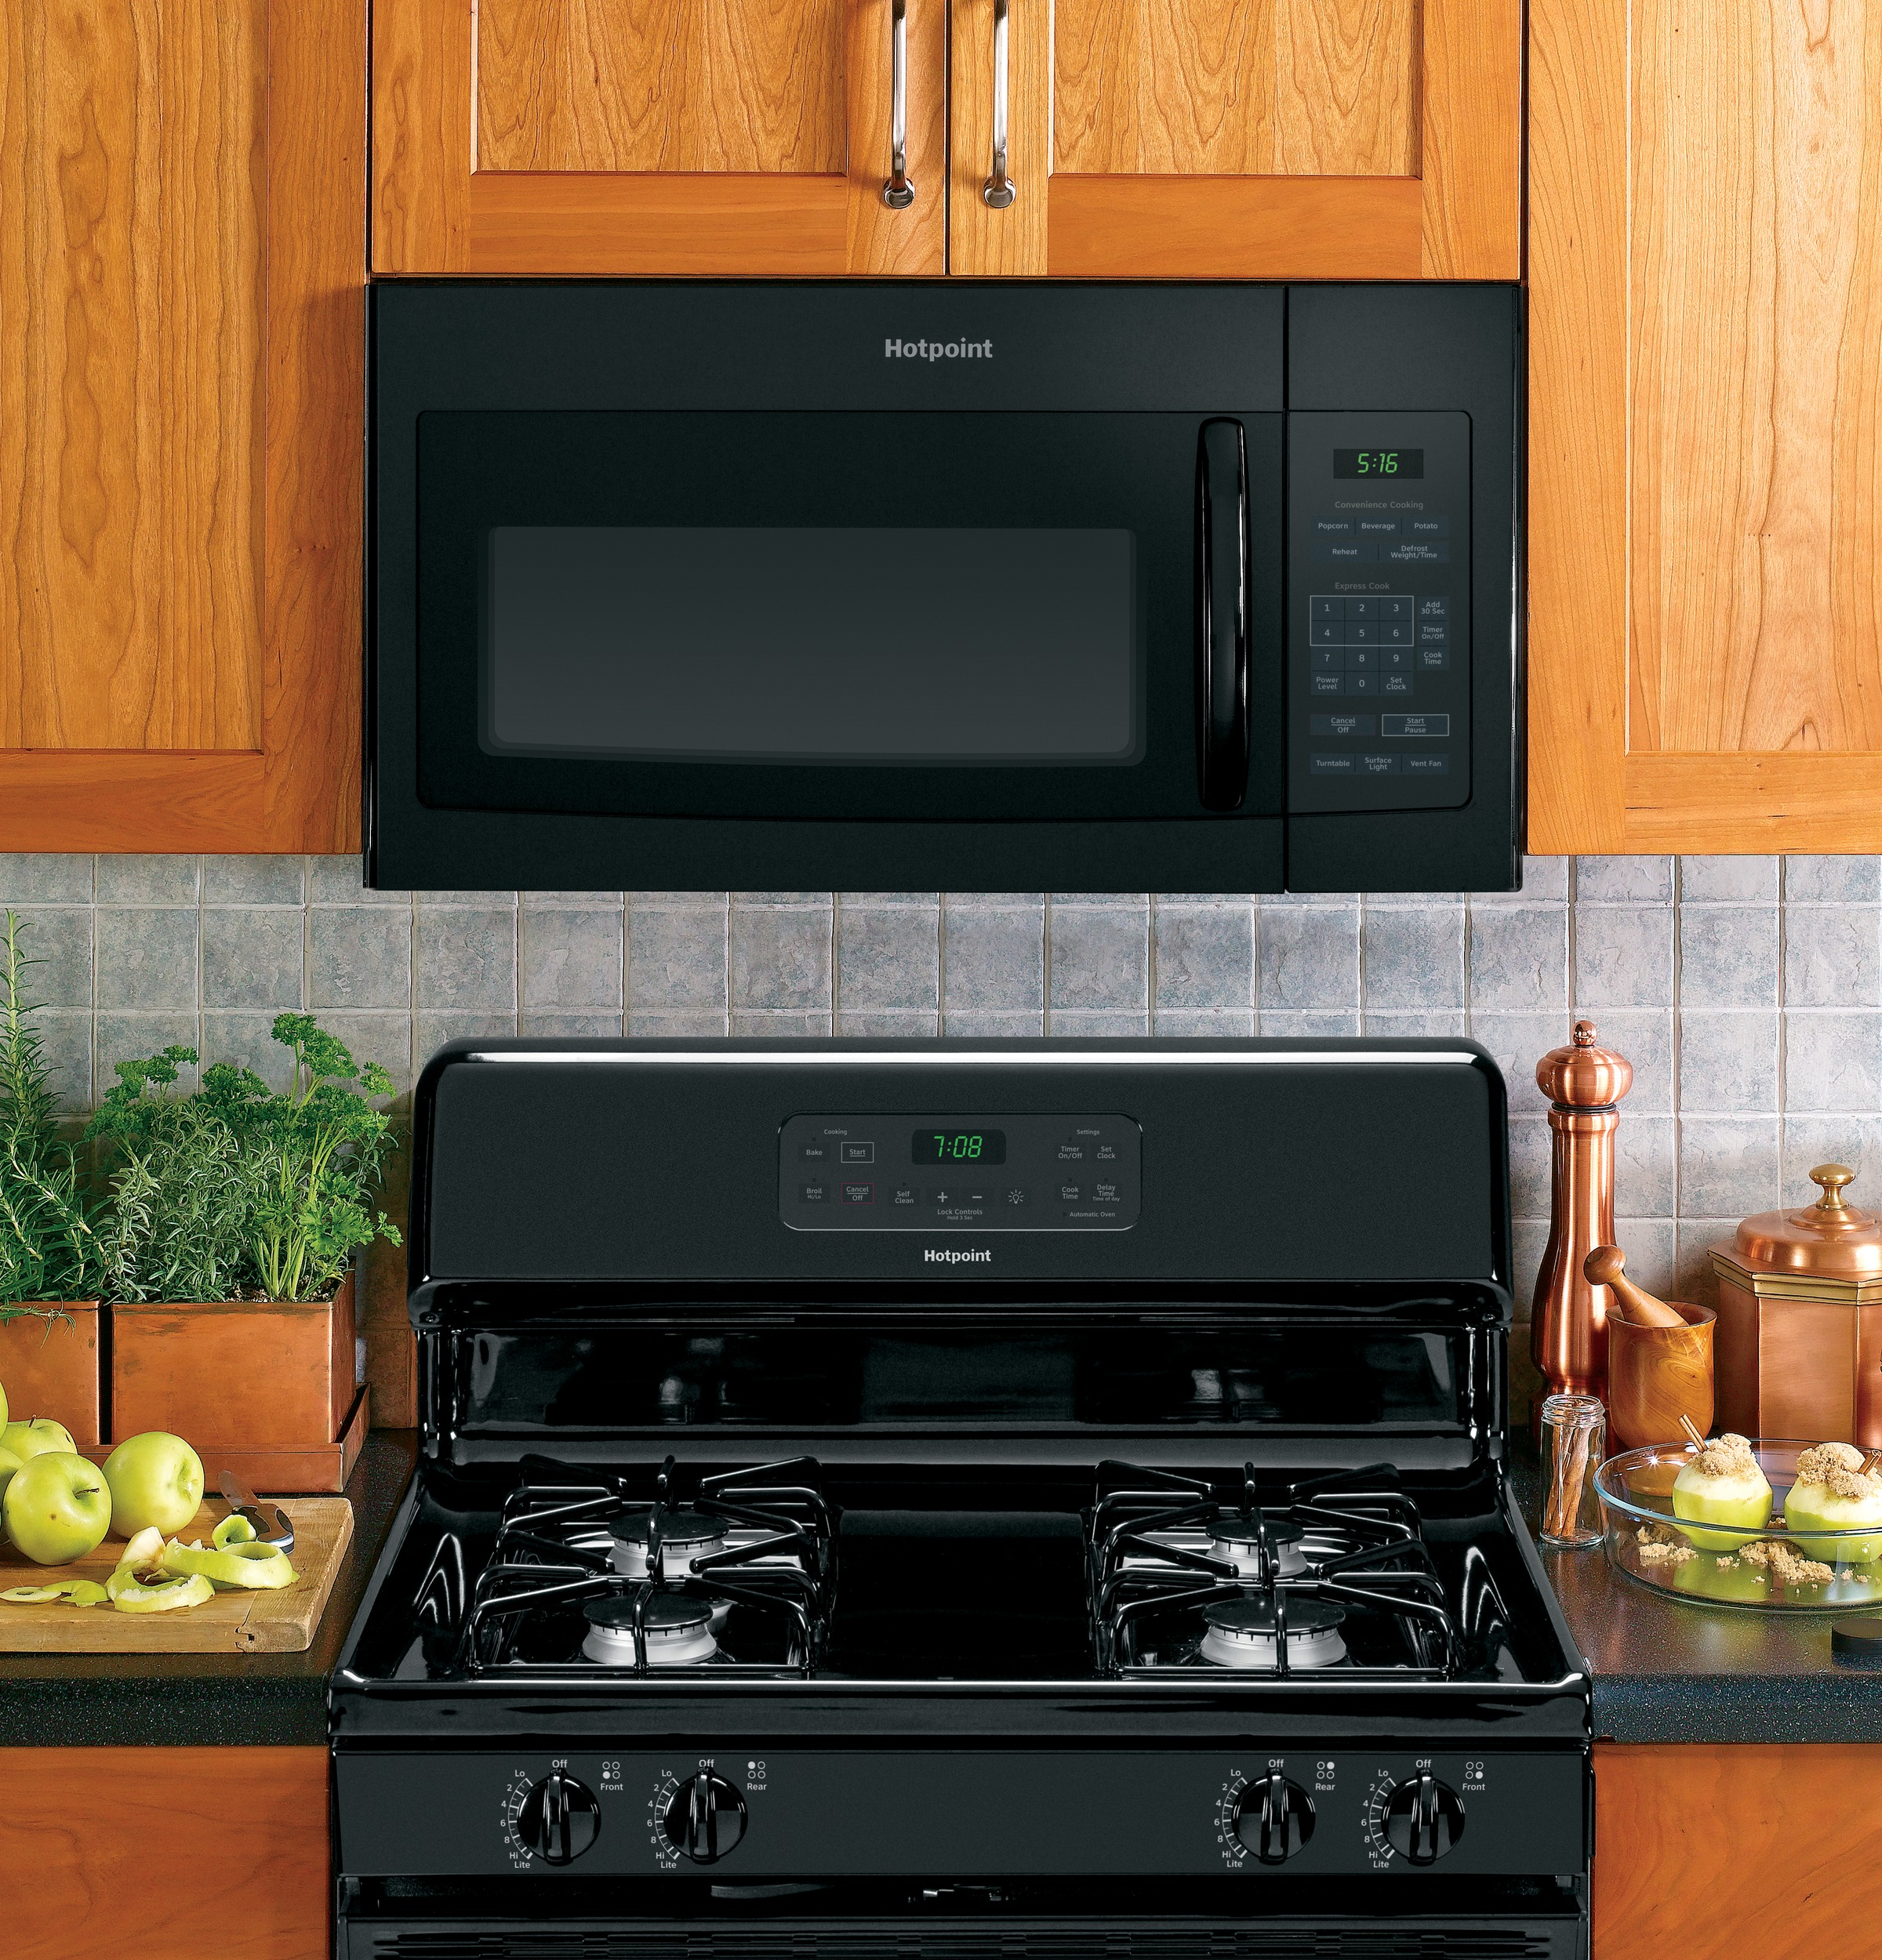 Model: RVM5160DHBB | Hotpoint Hotpoint® 1.6 Cu. Ft. Over-the-Range Microwave Oven